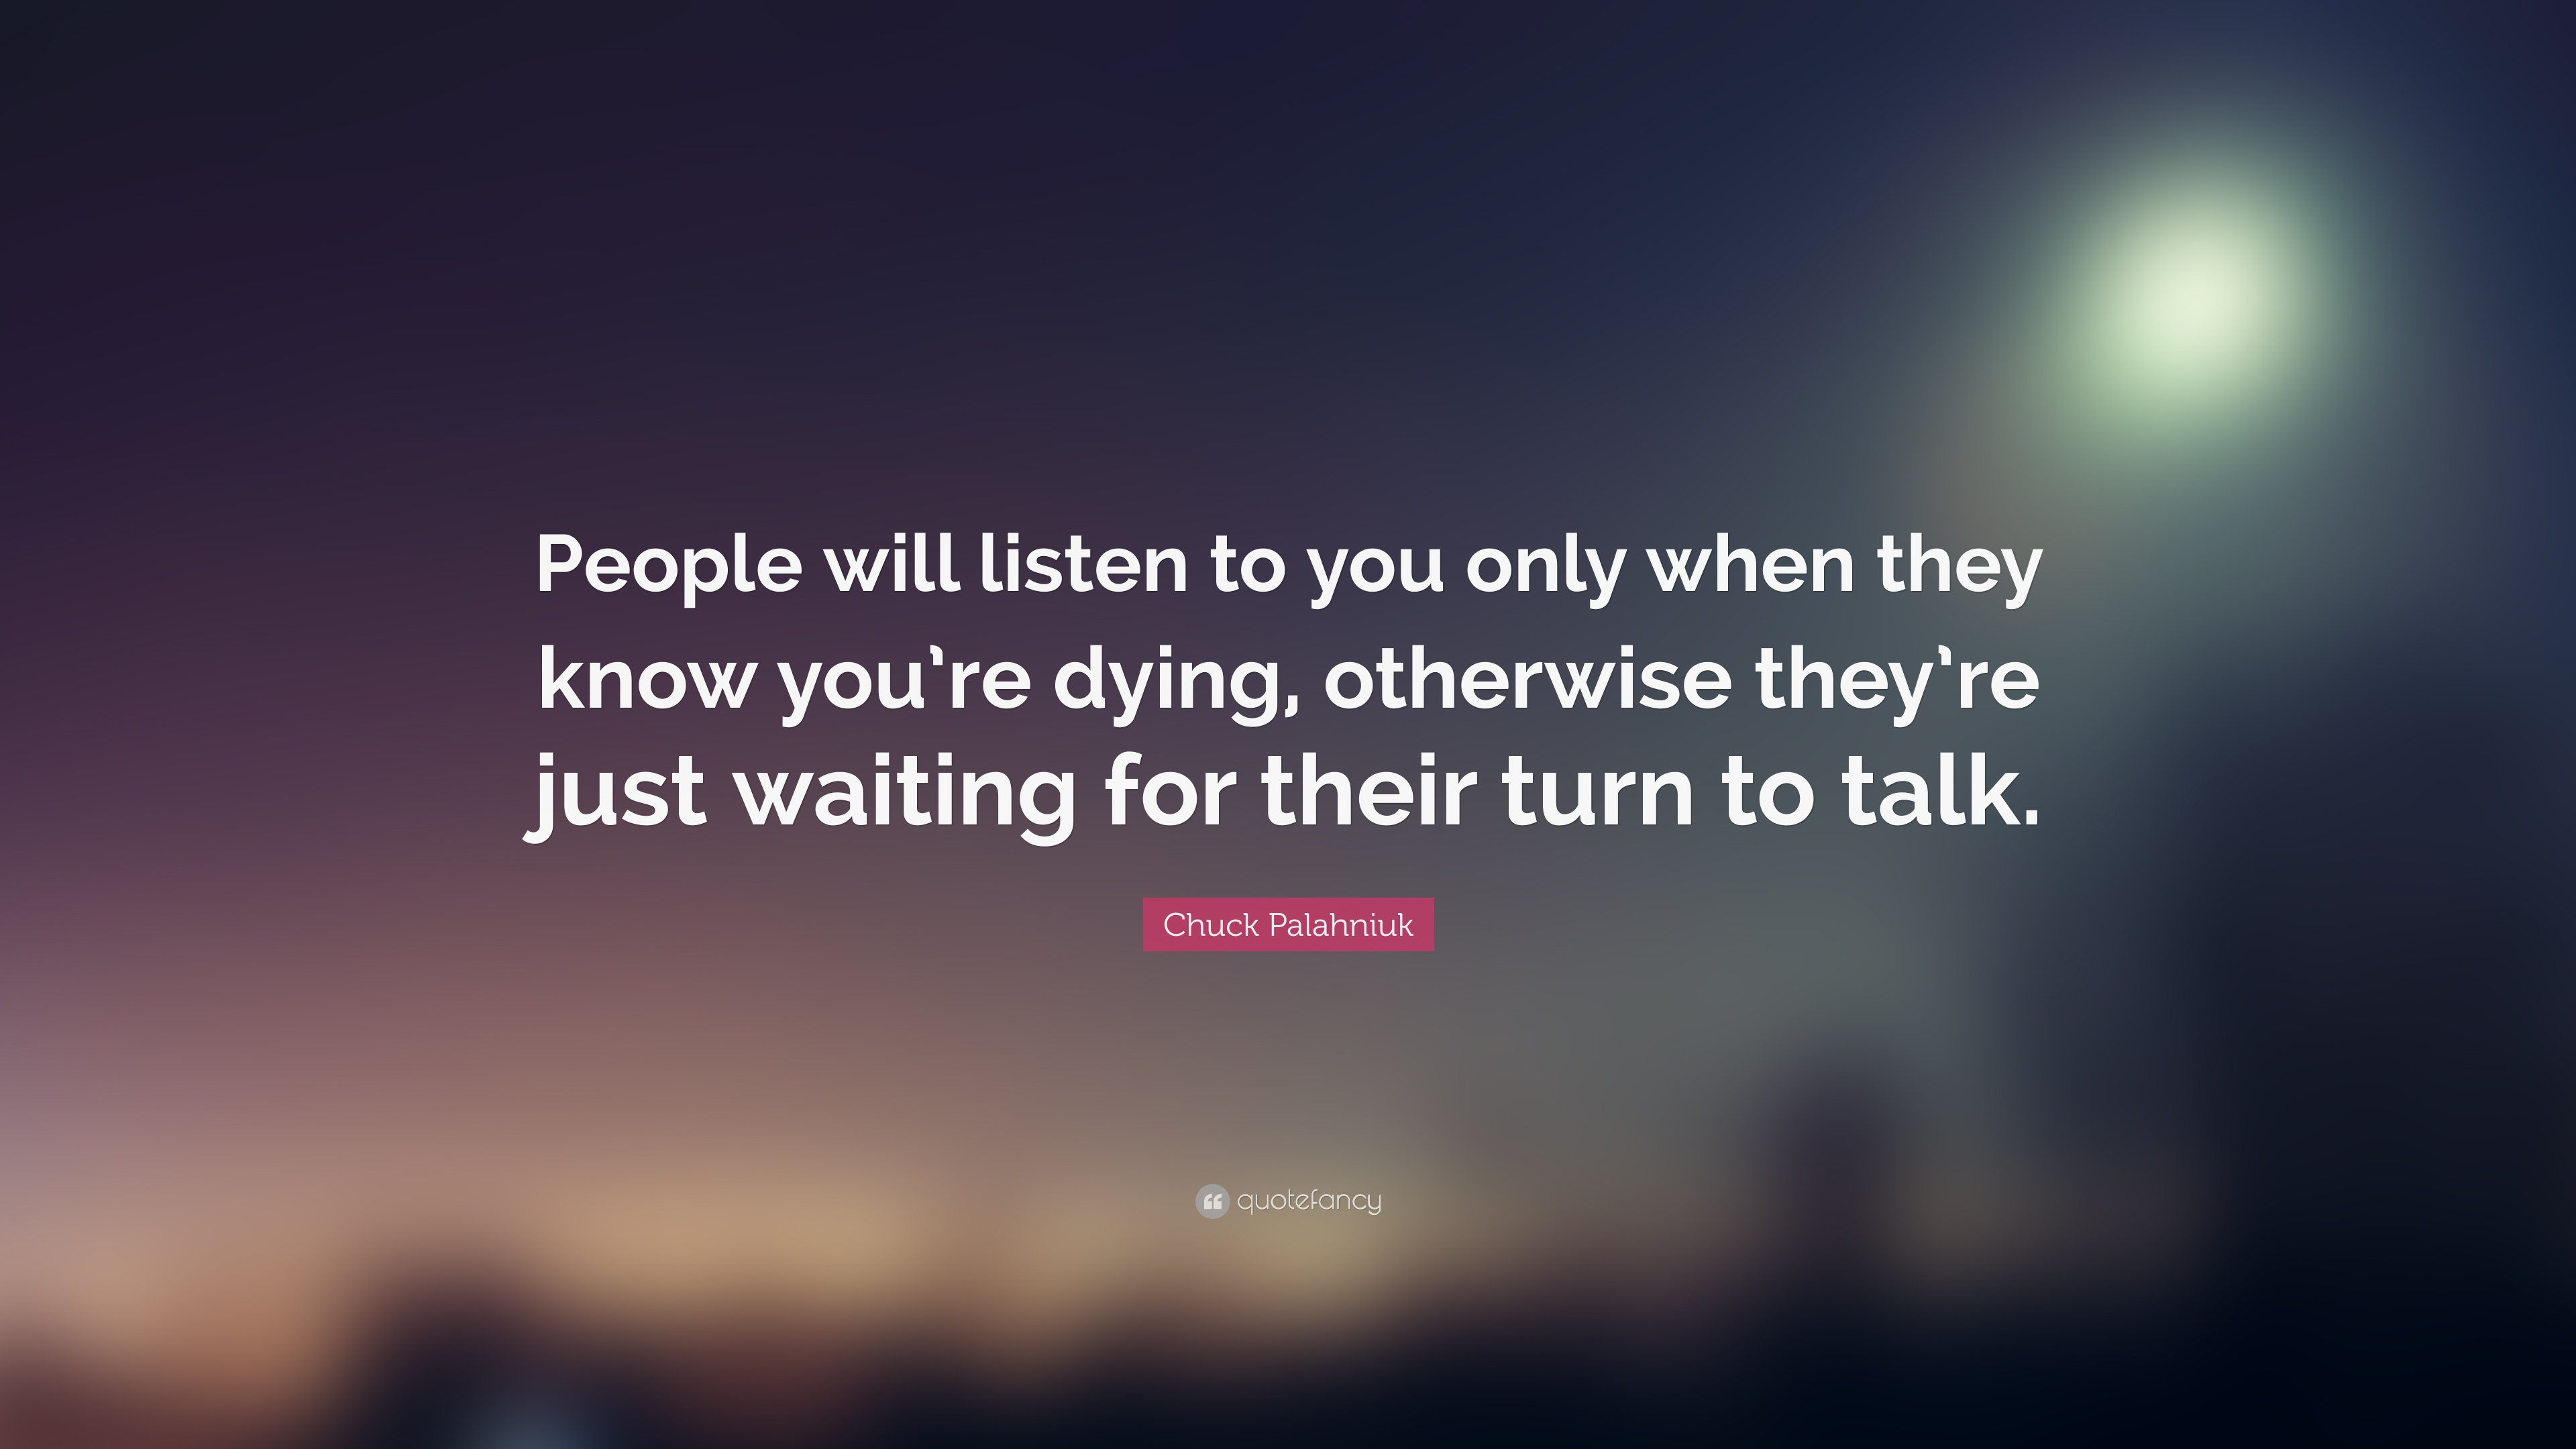 Chuck Palahniuk Quote People Will Listen To You Only When They Know You Re Dying Otherwise